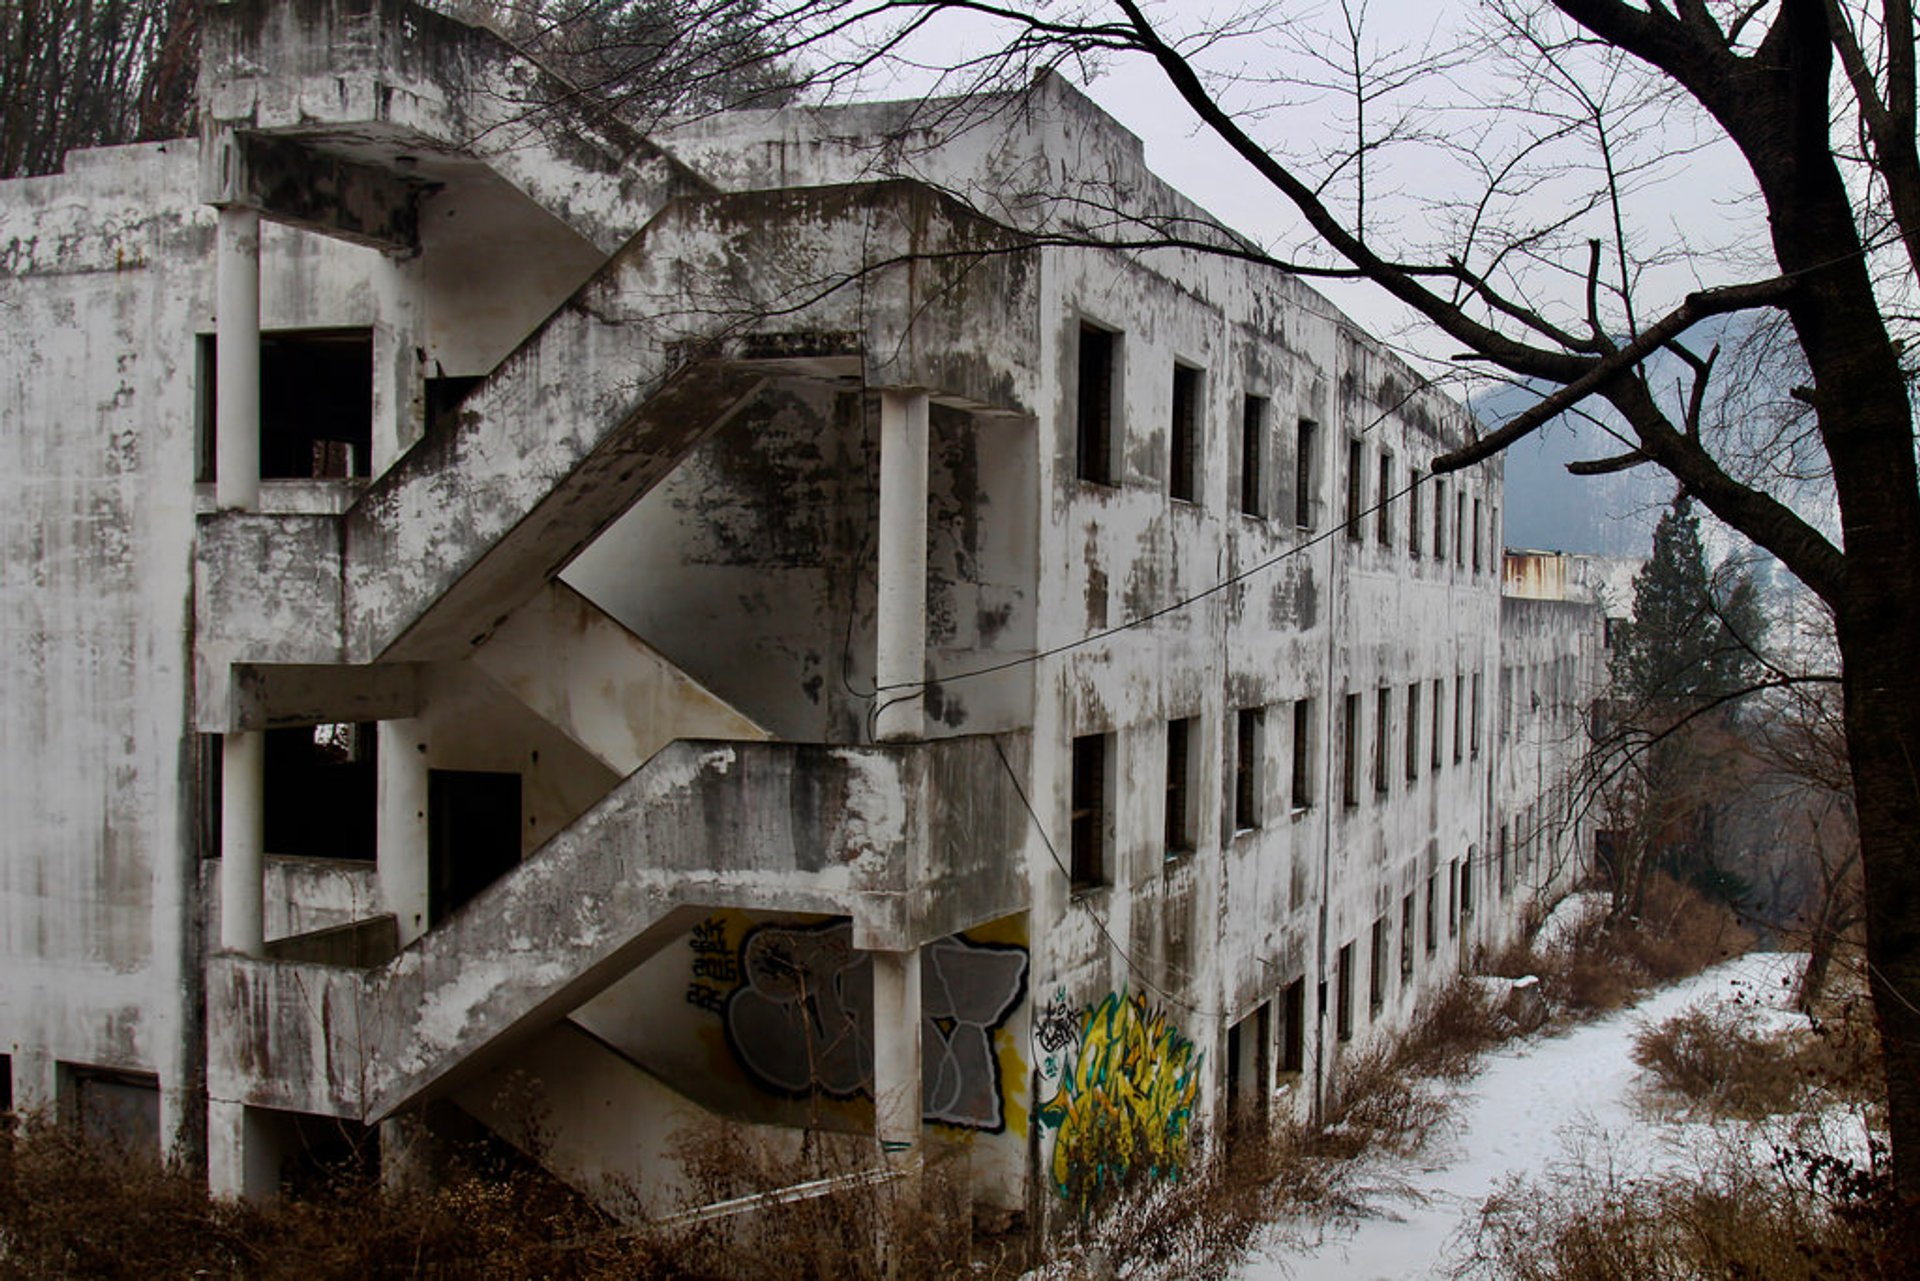 Gonjiam Psychiatric Hospital in South Korea - Best Season